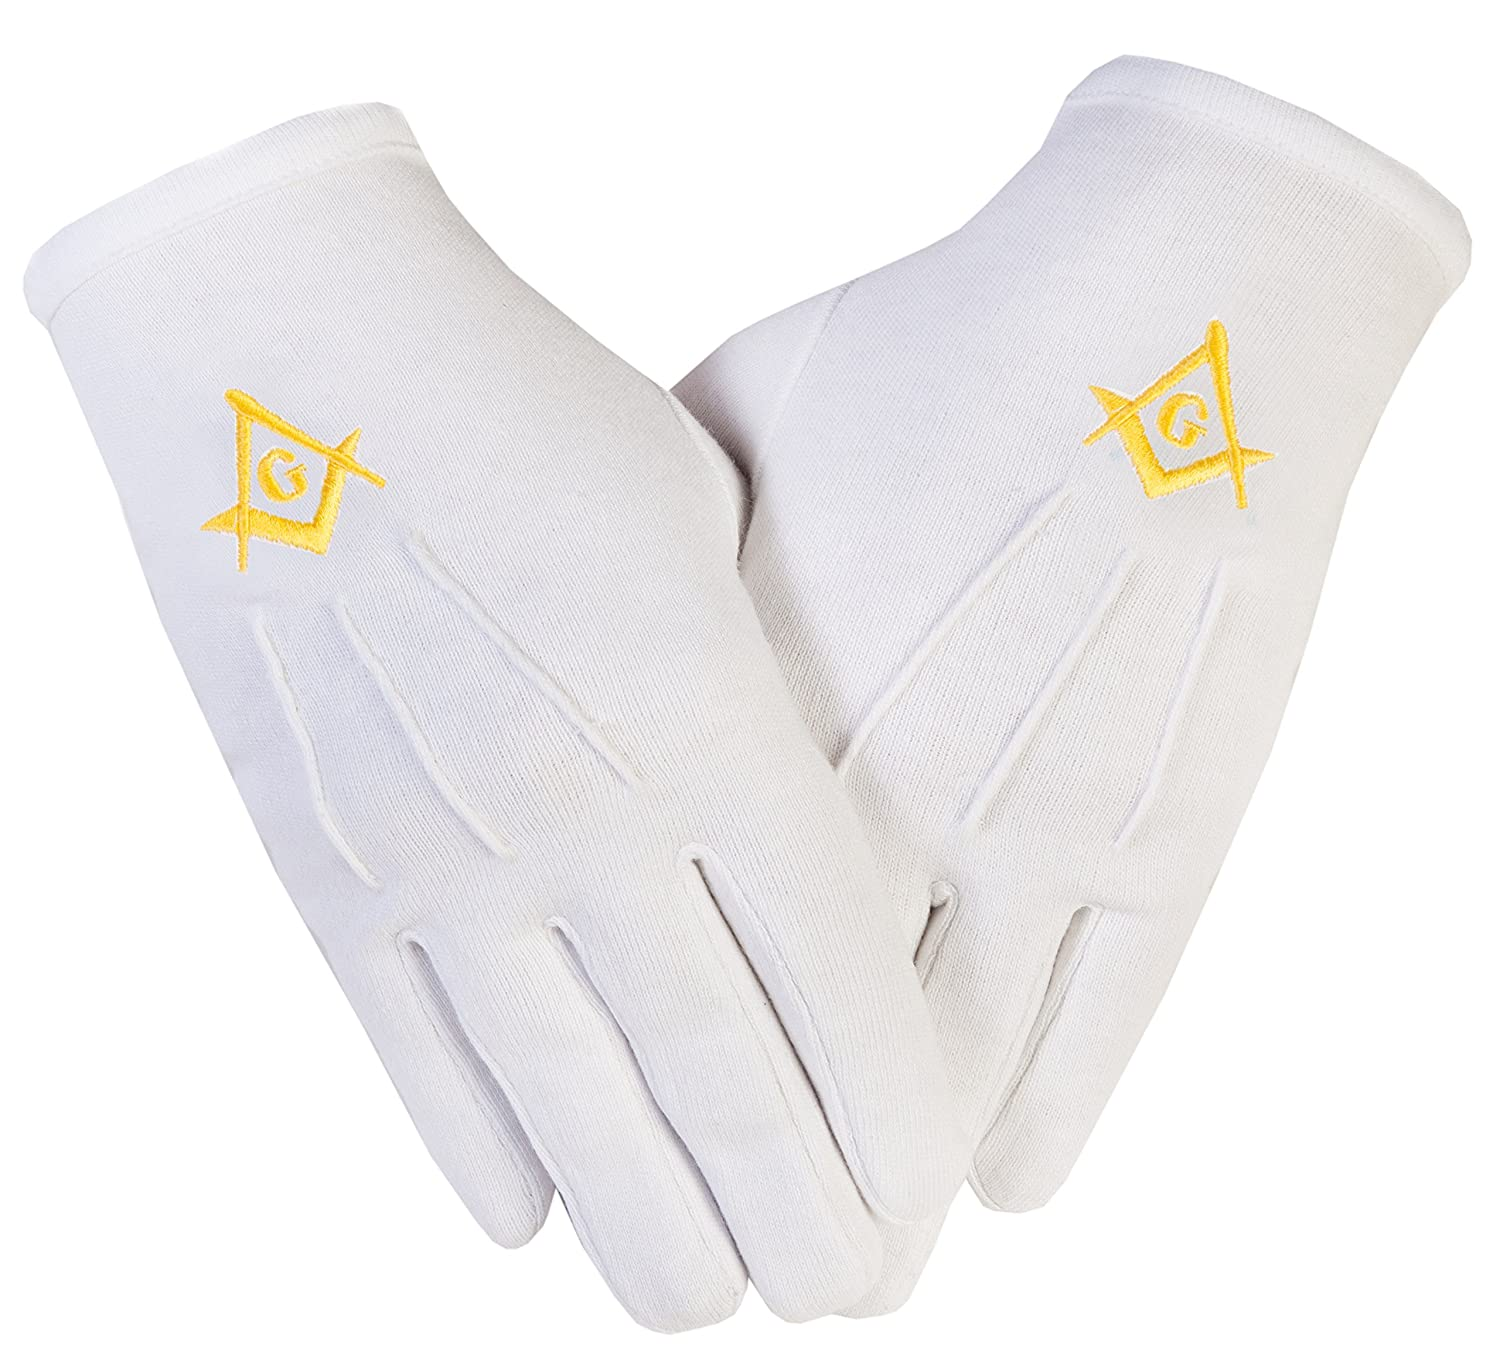 Masonic Freemasons Cotton Gloves Embroidered in Gold Square Compass S&C